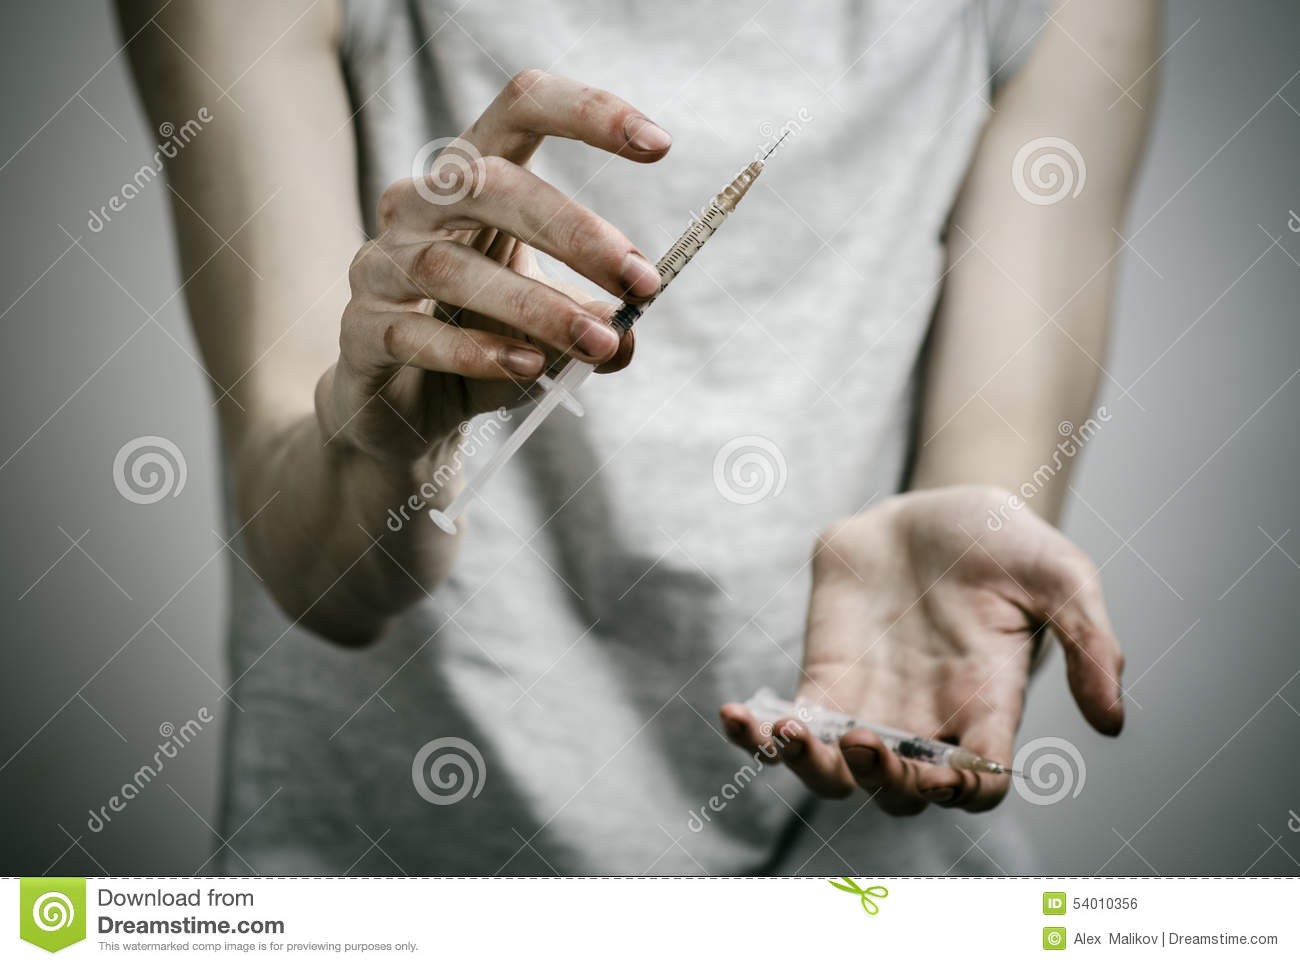 The fight against drugs and drug addiction topic: skinny dirty addict holding a syringe with a drug and red heart on a dark